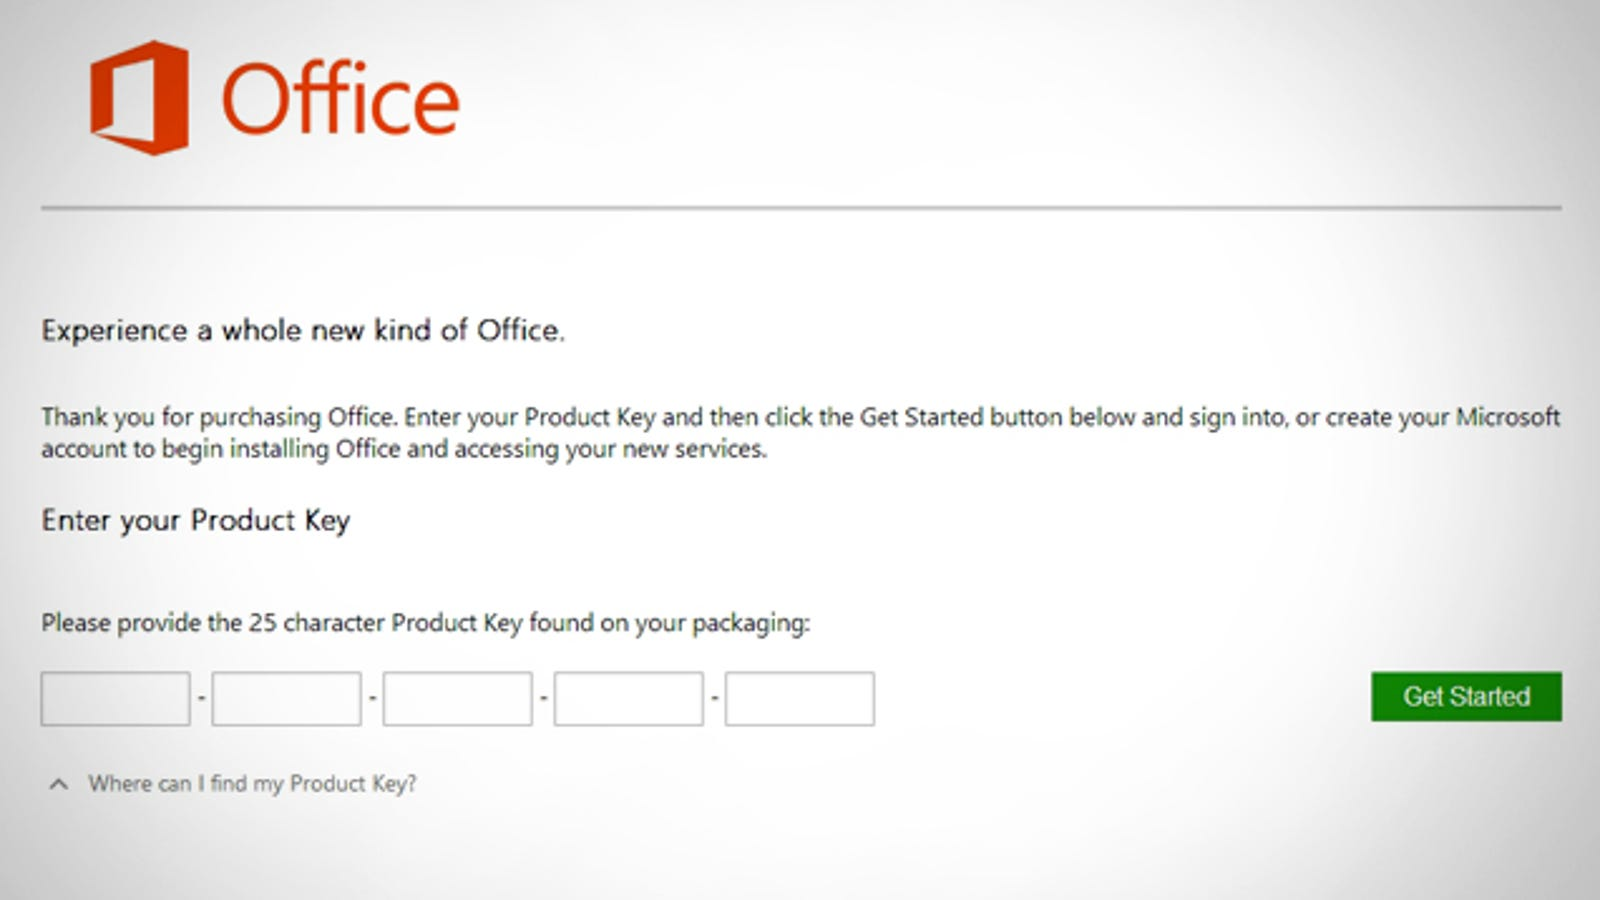 Purchase office 2013 license key | Microsoft Office 2013 ...